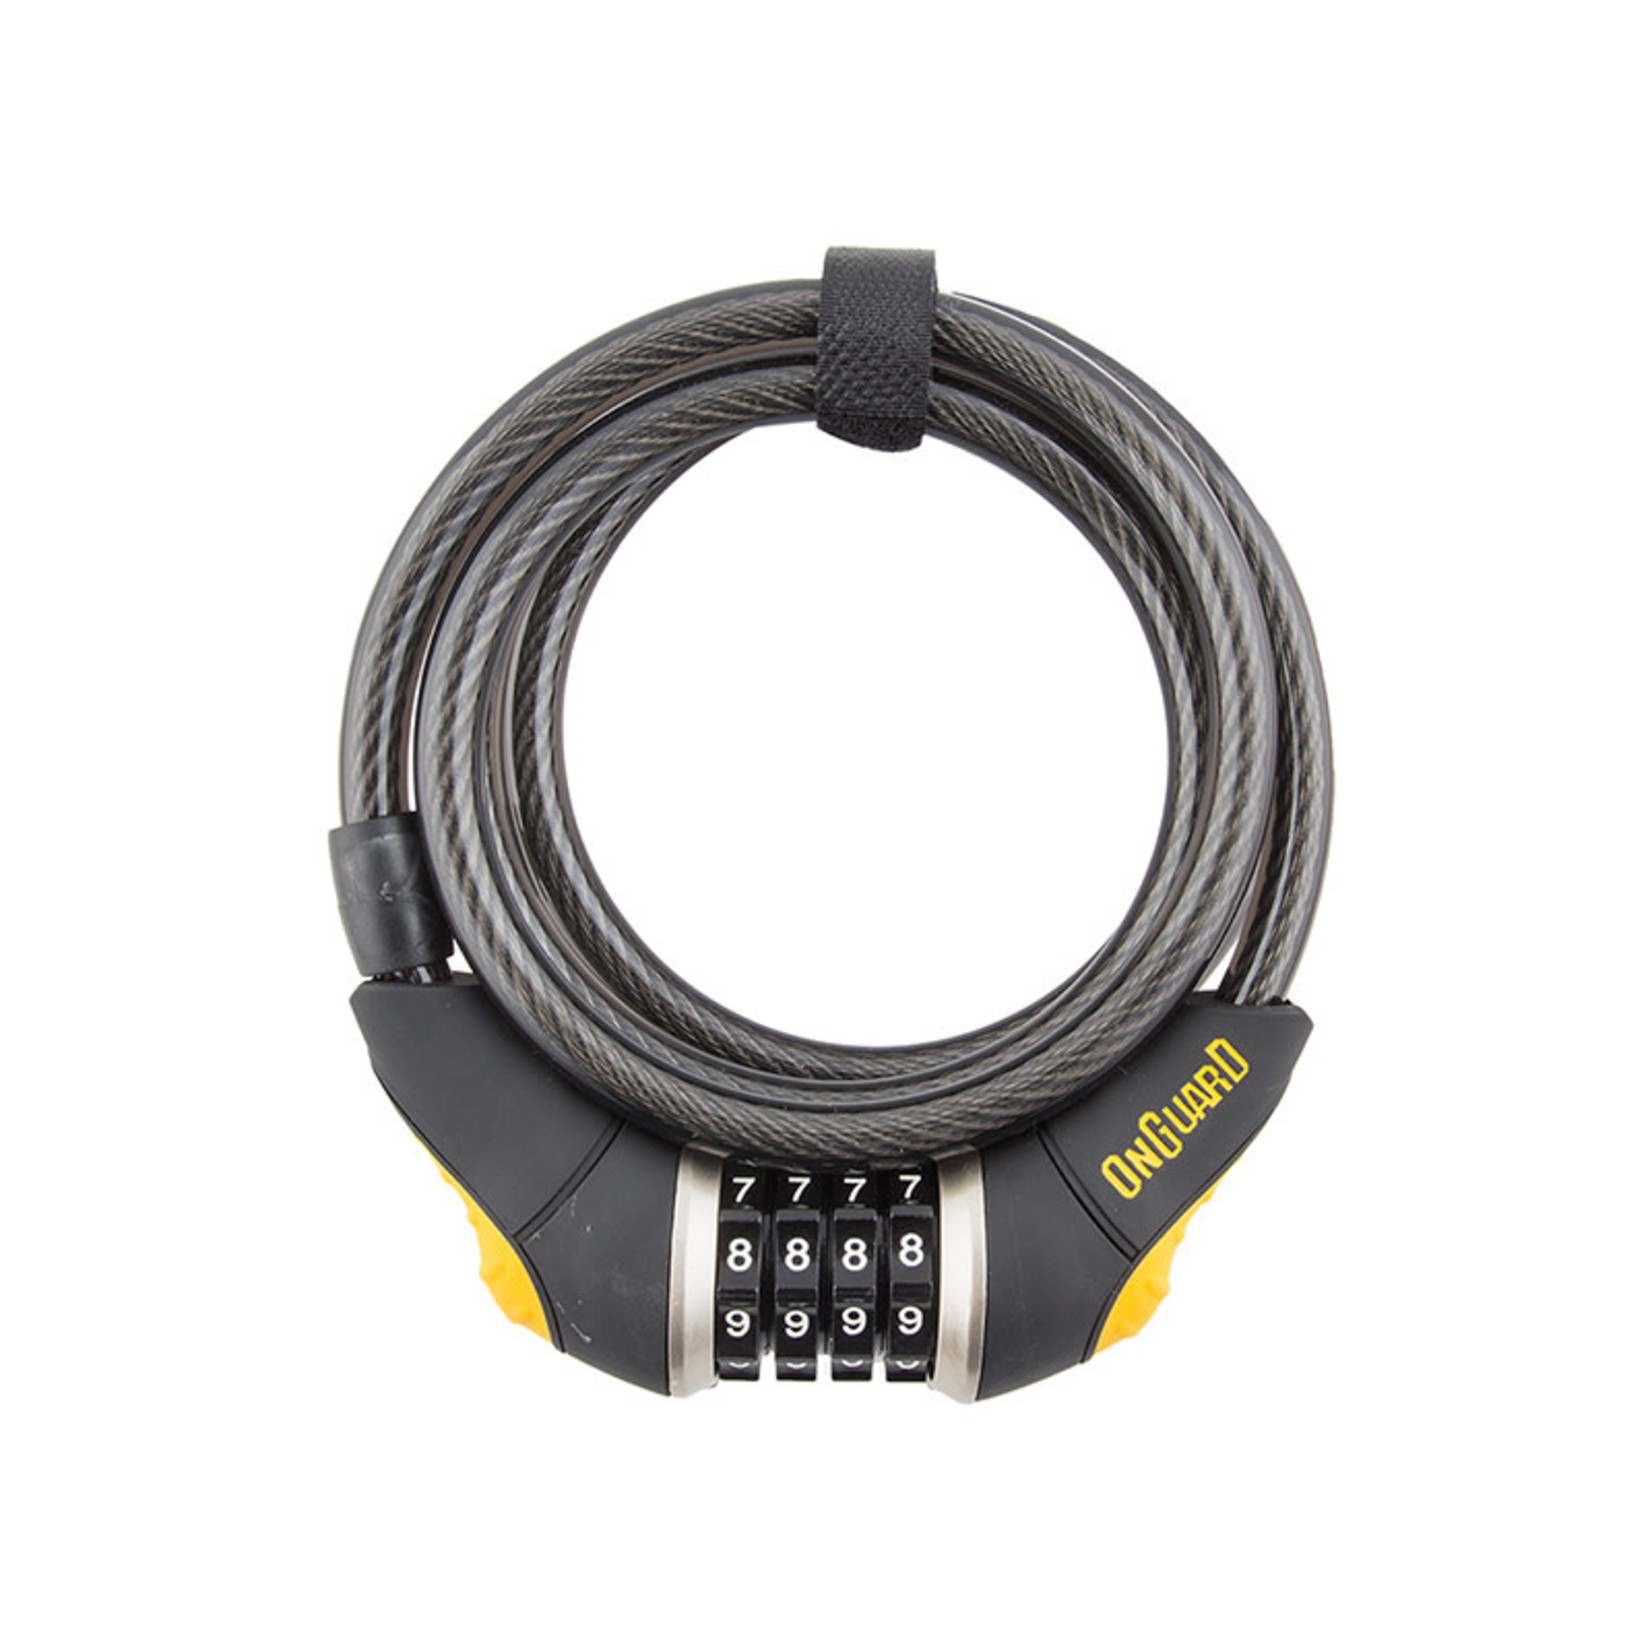 Onguard OnGuard, Doberman 8032, Coil cable with combination lock, 10mm x 185cm (10mm x 6')